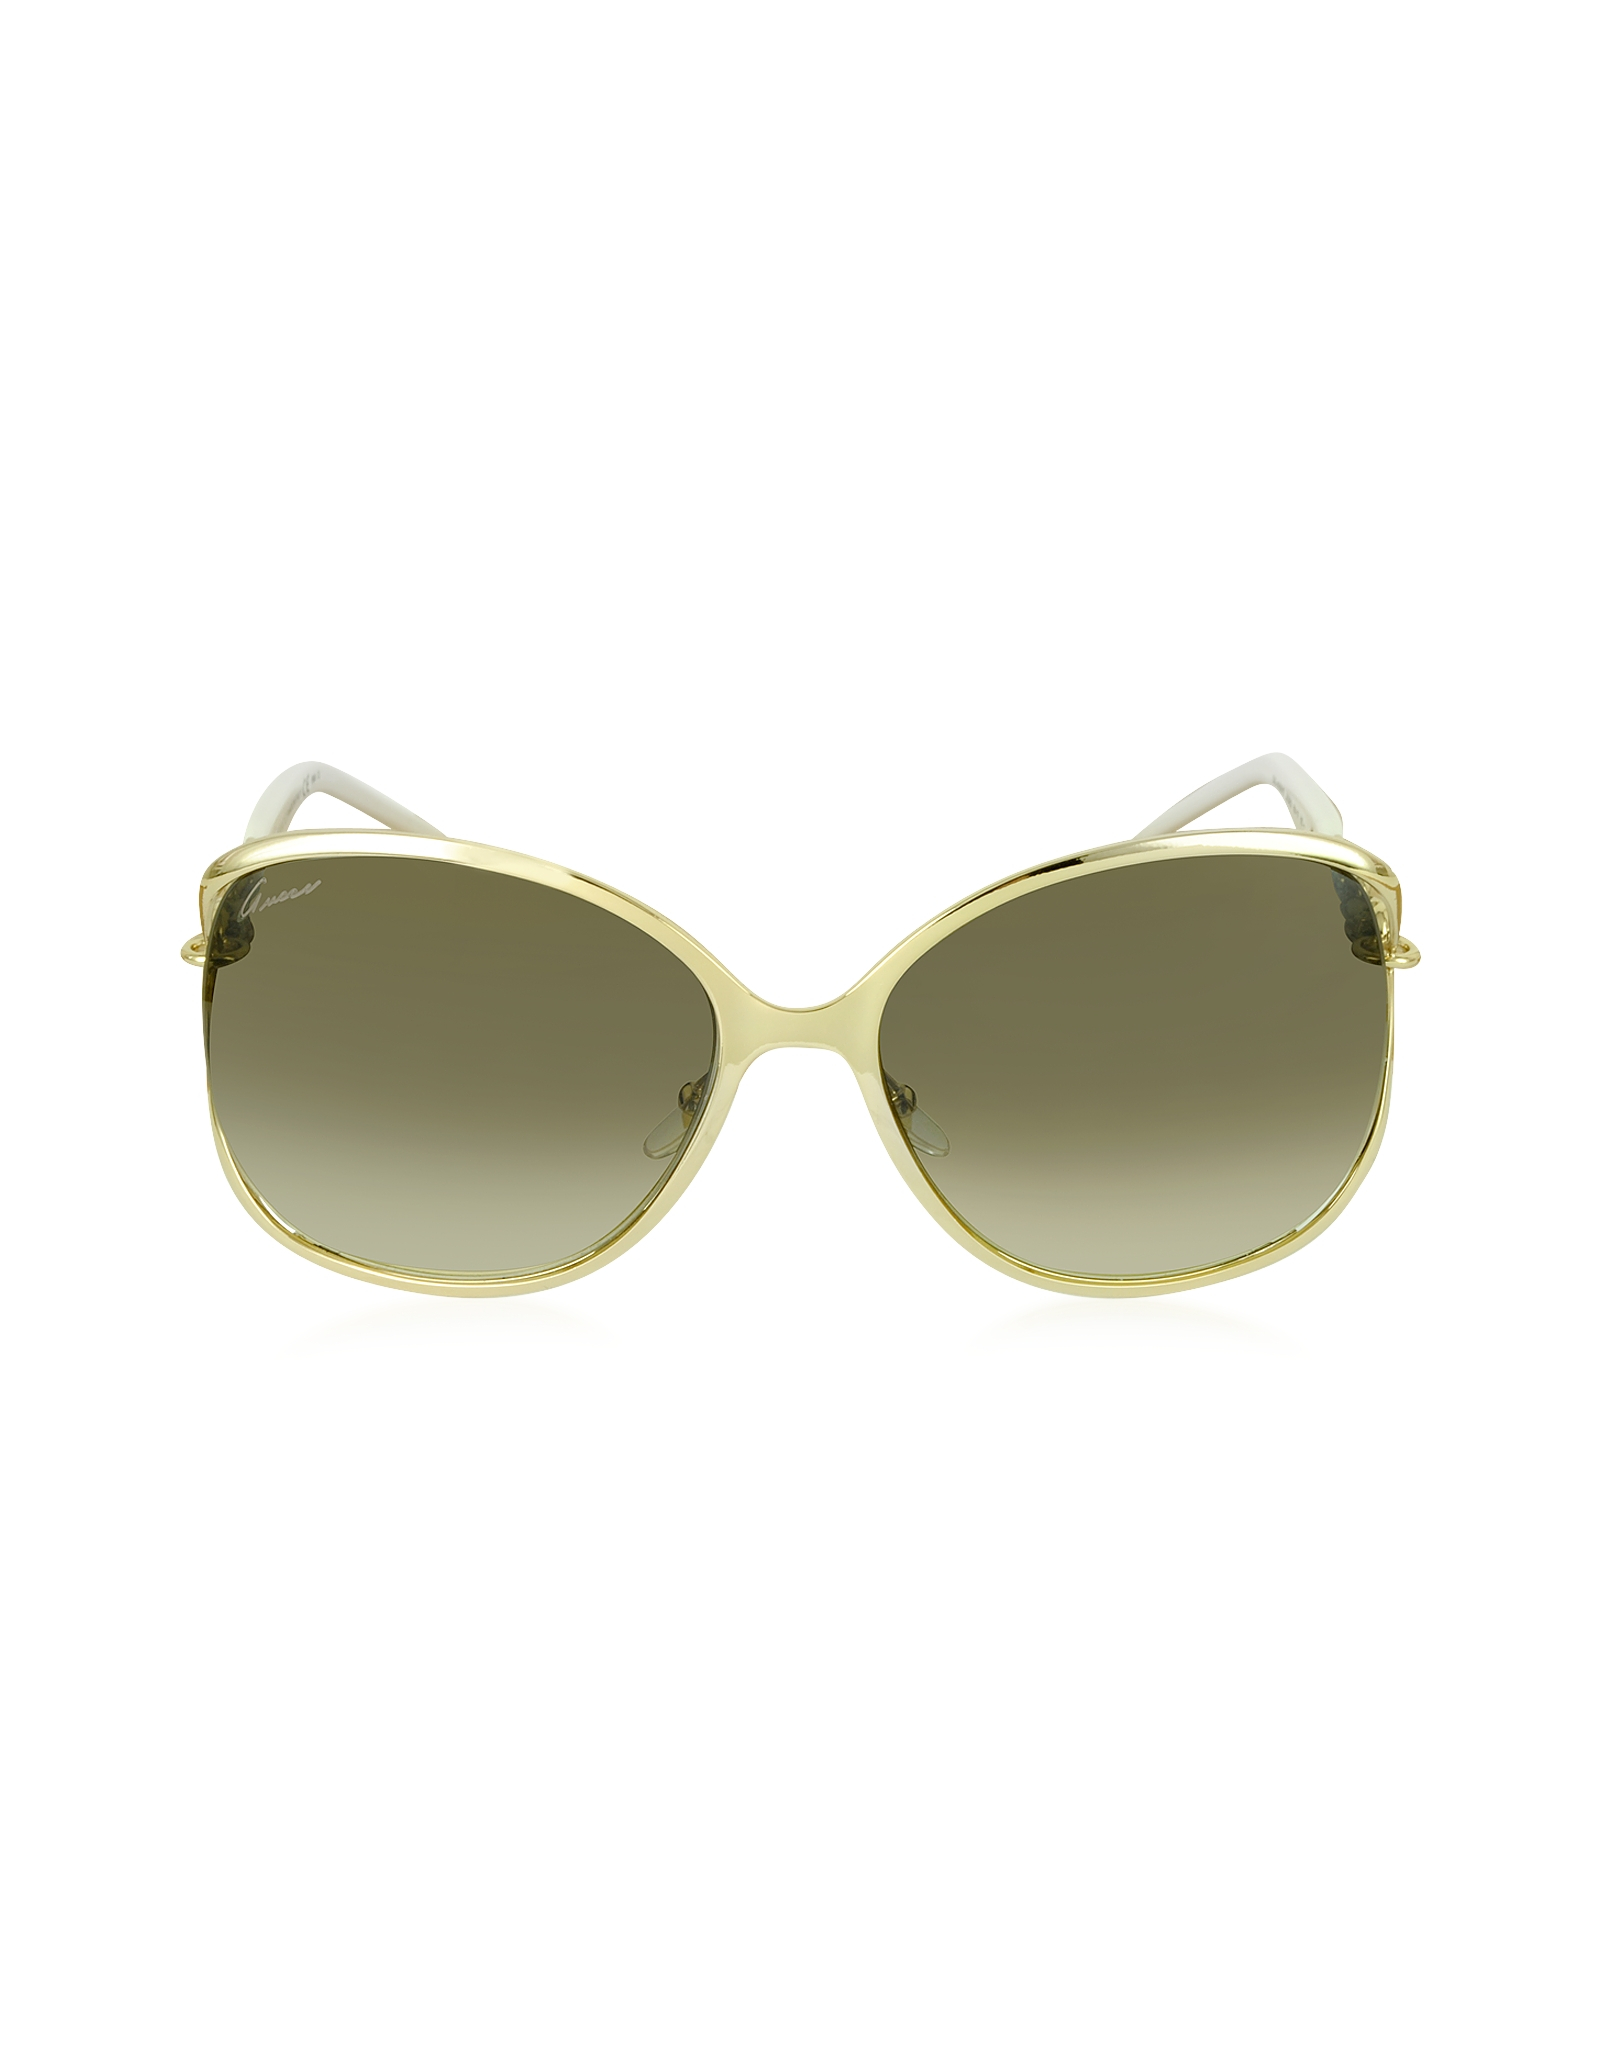 52e0c115d48 Gucci Rimless Sunglasses White – McAllister Technical Services